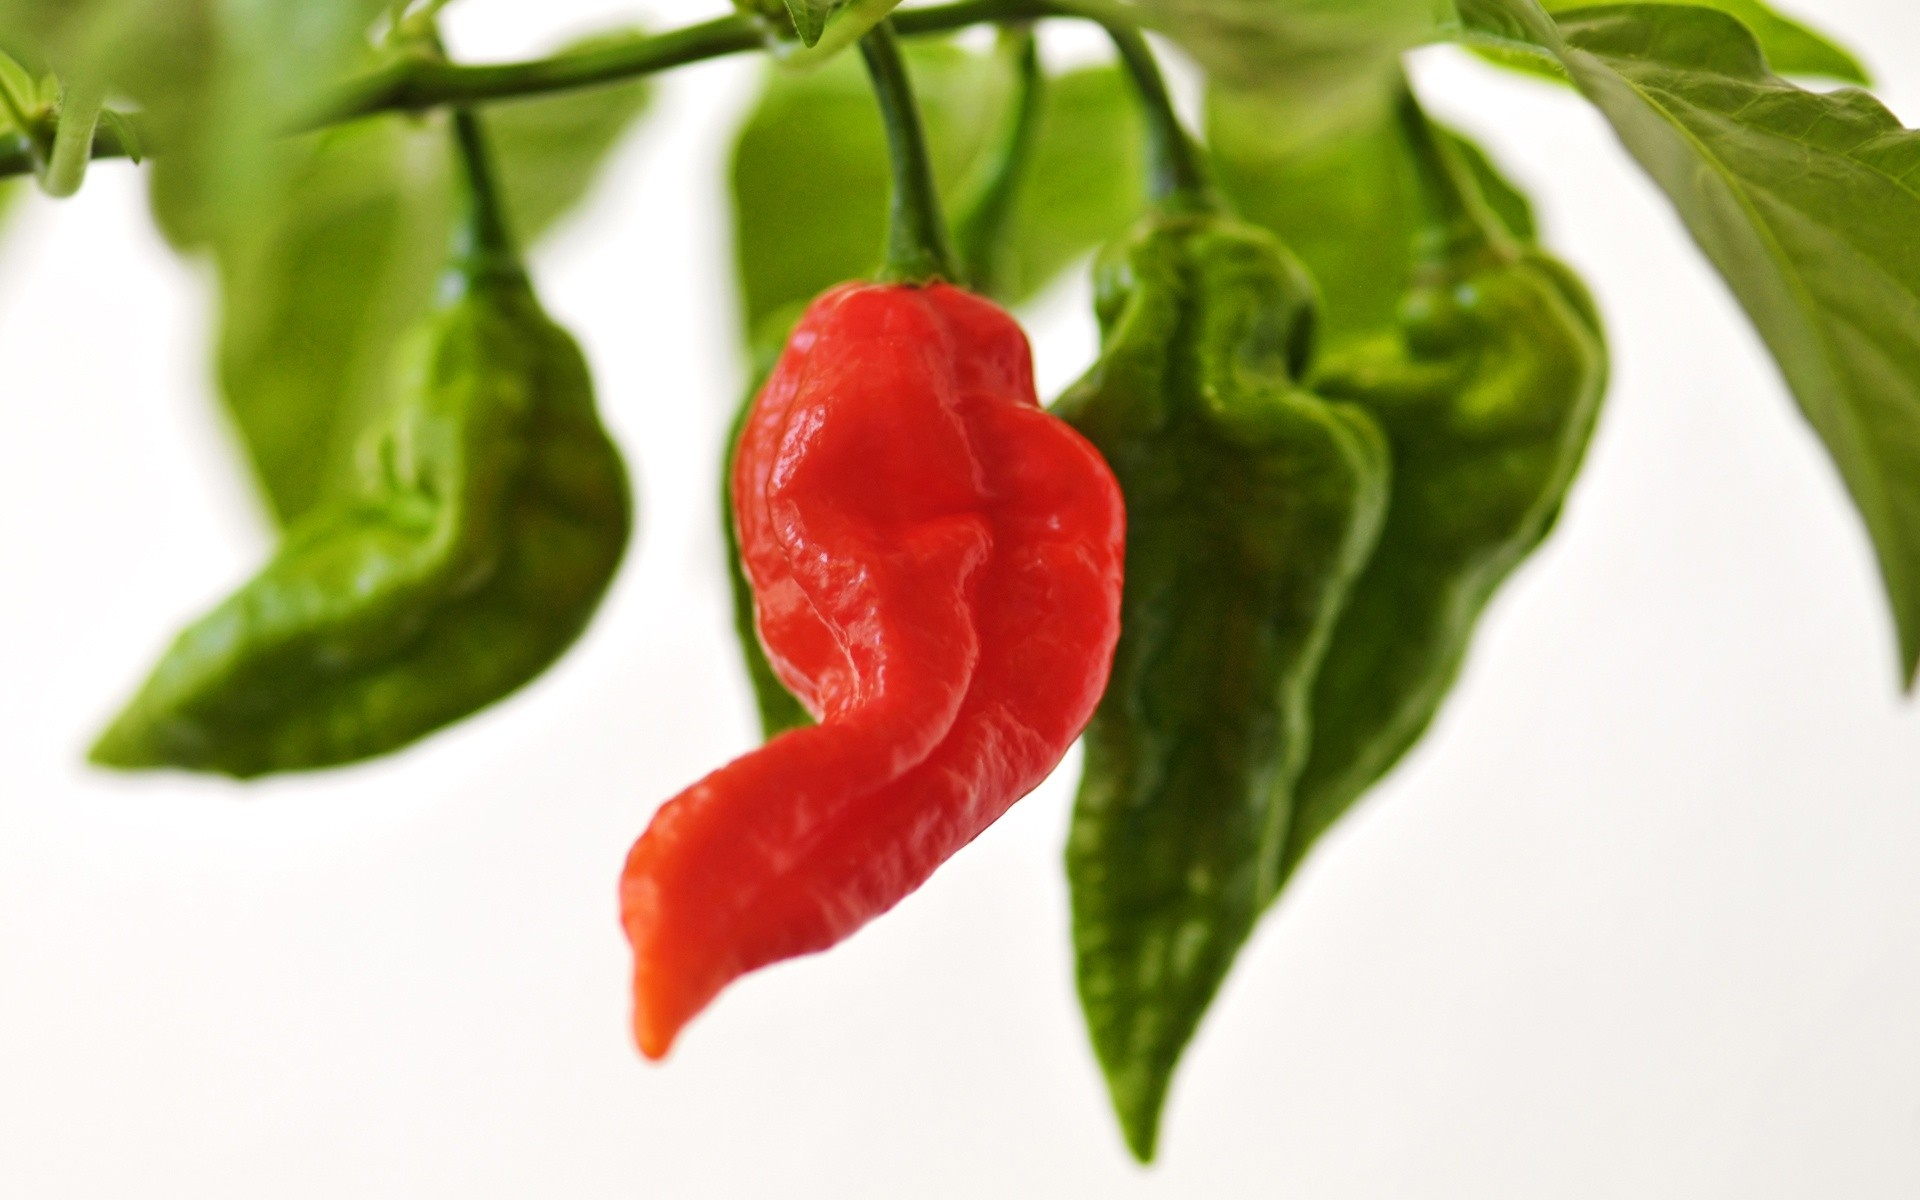 how hot is chili pepper